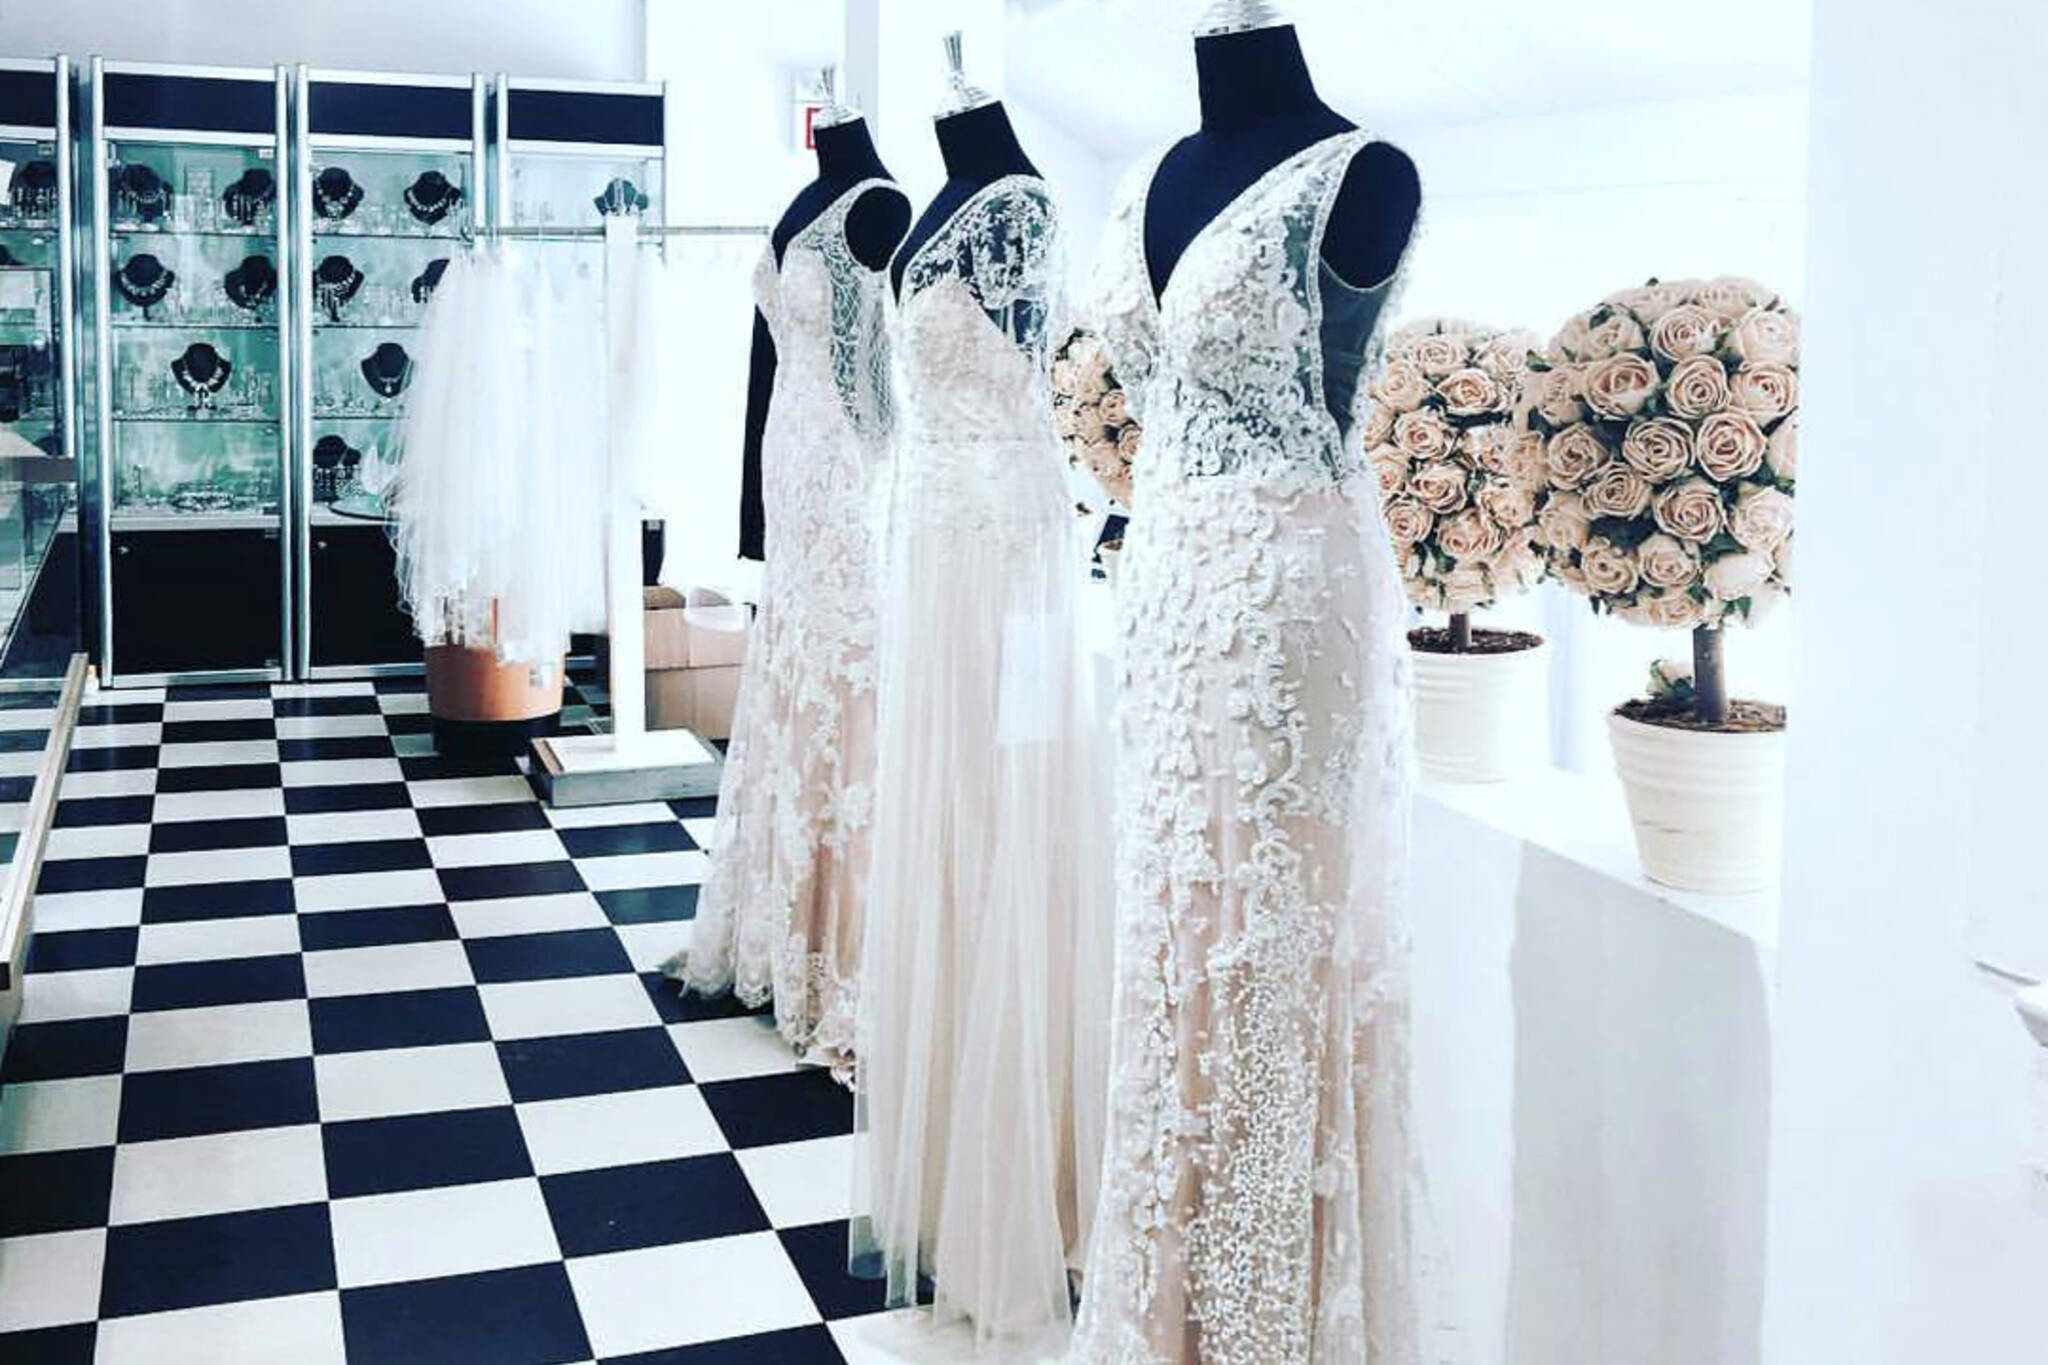 Discount Wedding Gowns: The Top 10 Stores For Cheap Wedding Dresses In Toronto